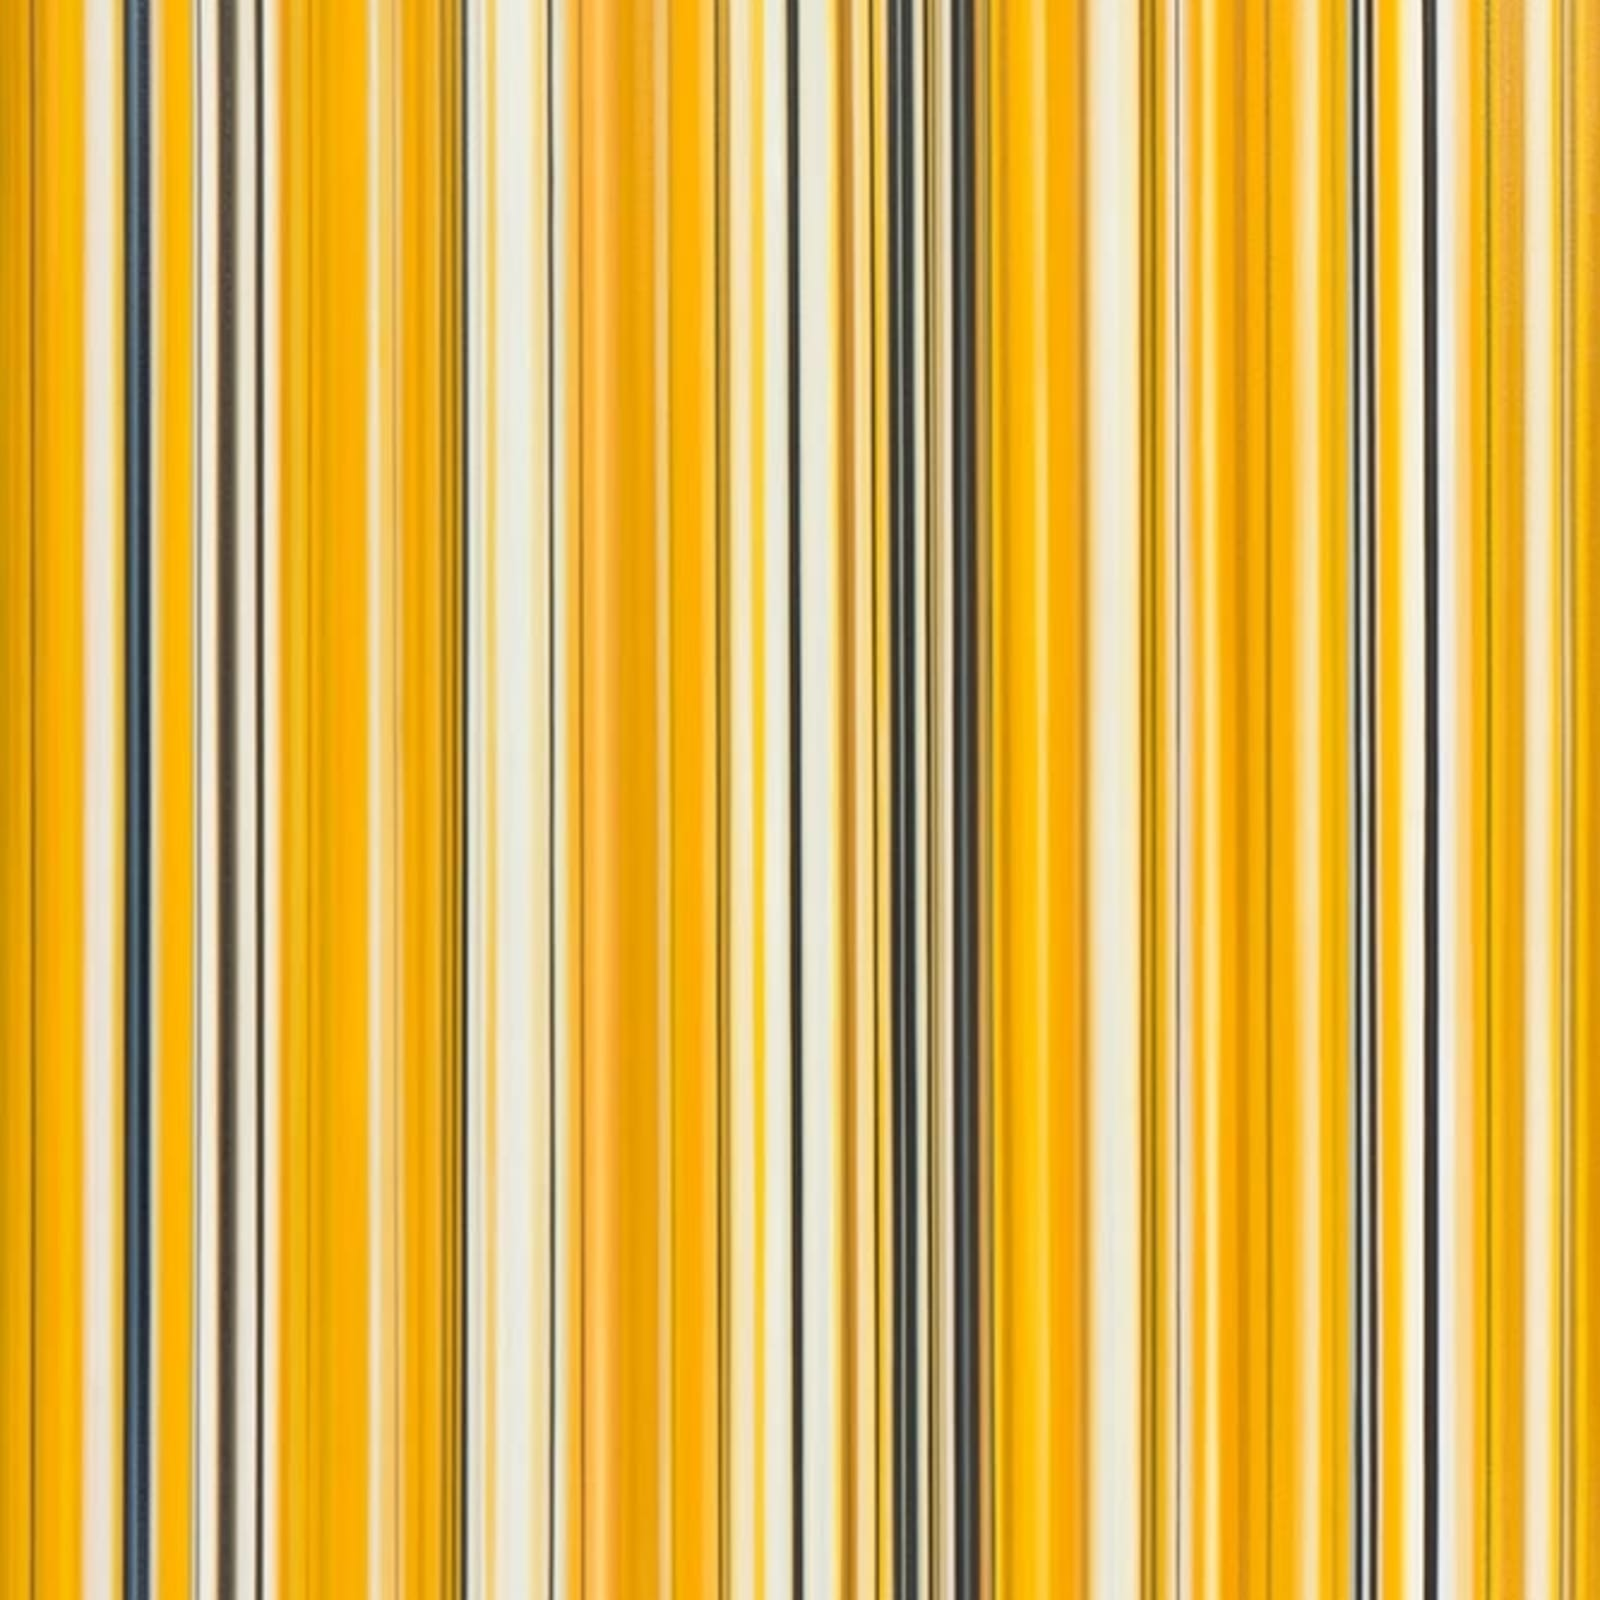 Cornelia Thomsen - Stripes Nr. 71 - 48 x 32